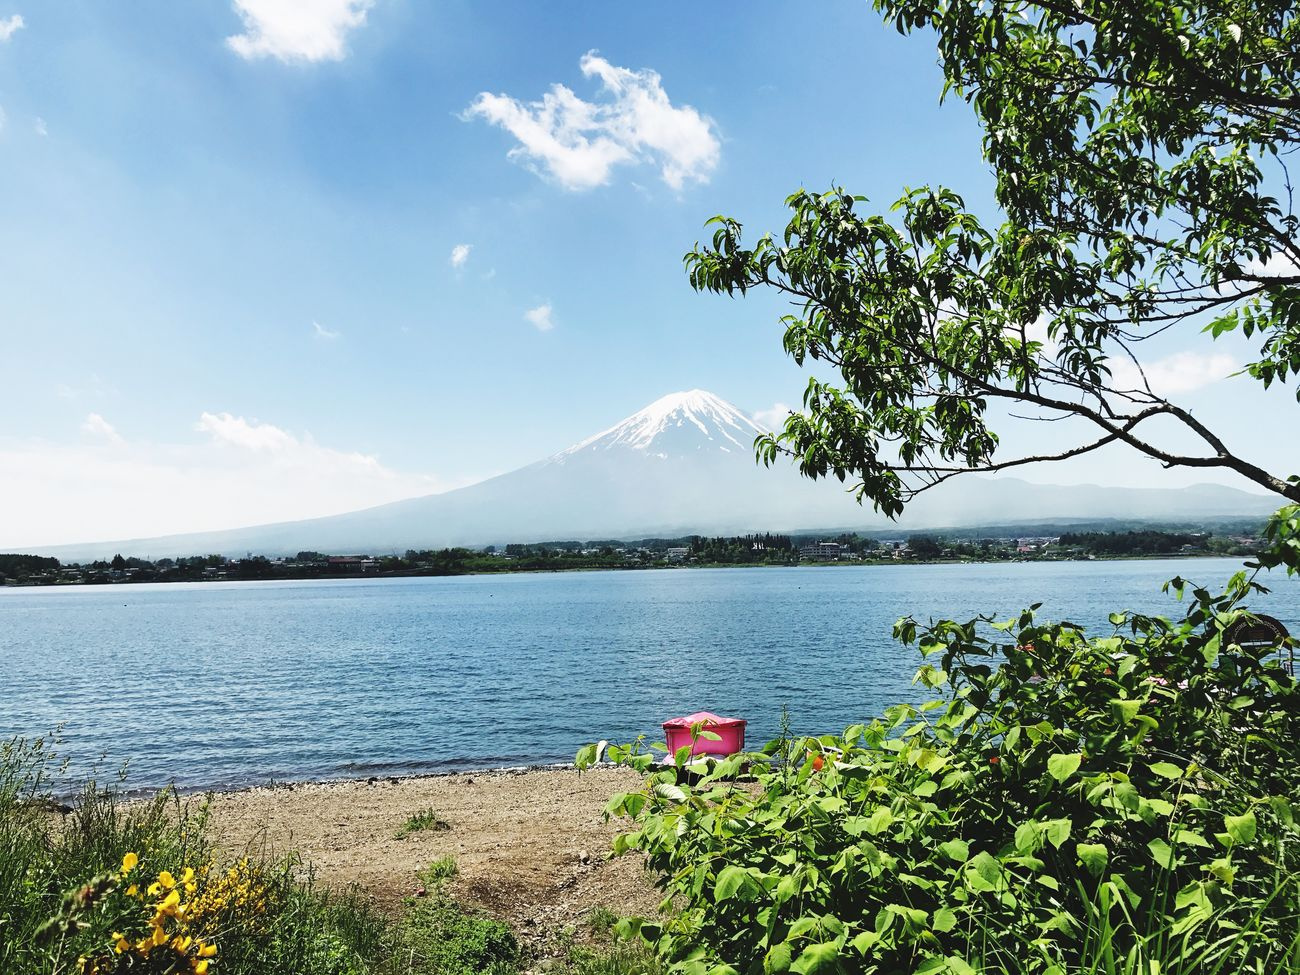 Mt.Fuji Sunny Day Fujikawaguchiko JapanLife Japan Photography Japan Nature Beauty In Nature Scenics Lake Sky Tranquil Scene Water Tree Day Mountain Range Tranquility No People Growth Outdoors Plant Cloud - Sky Landscape Foreground